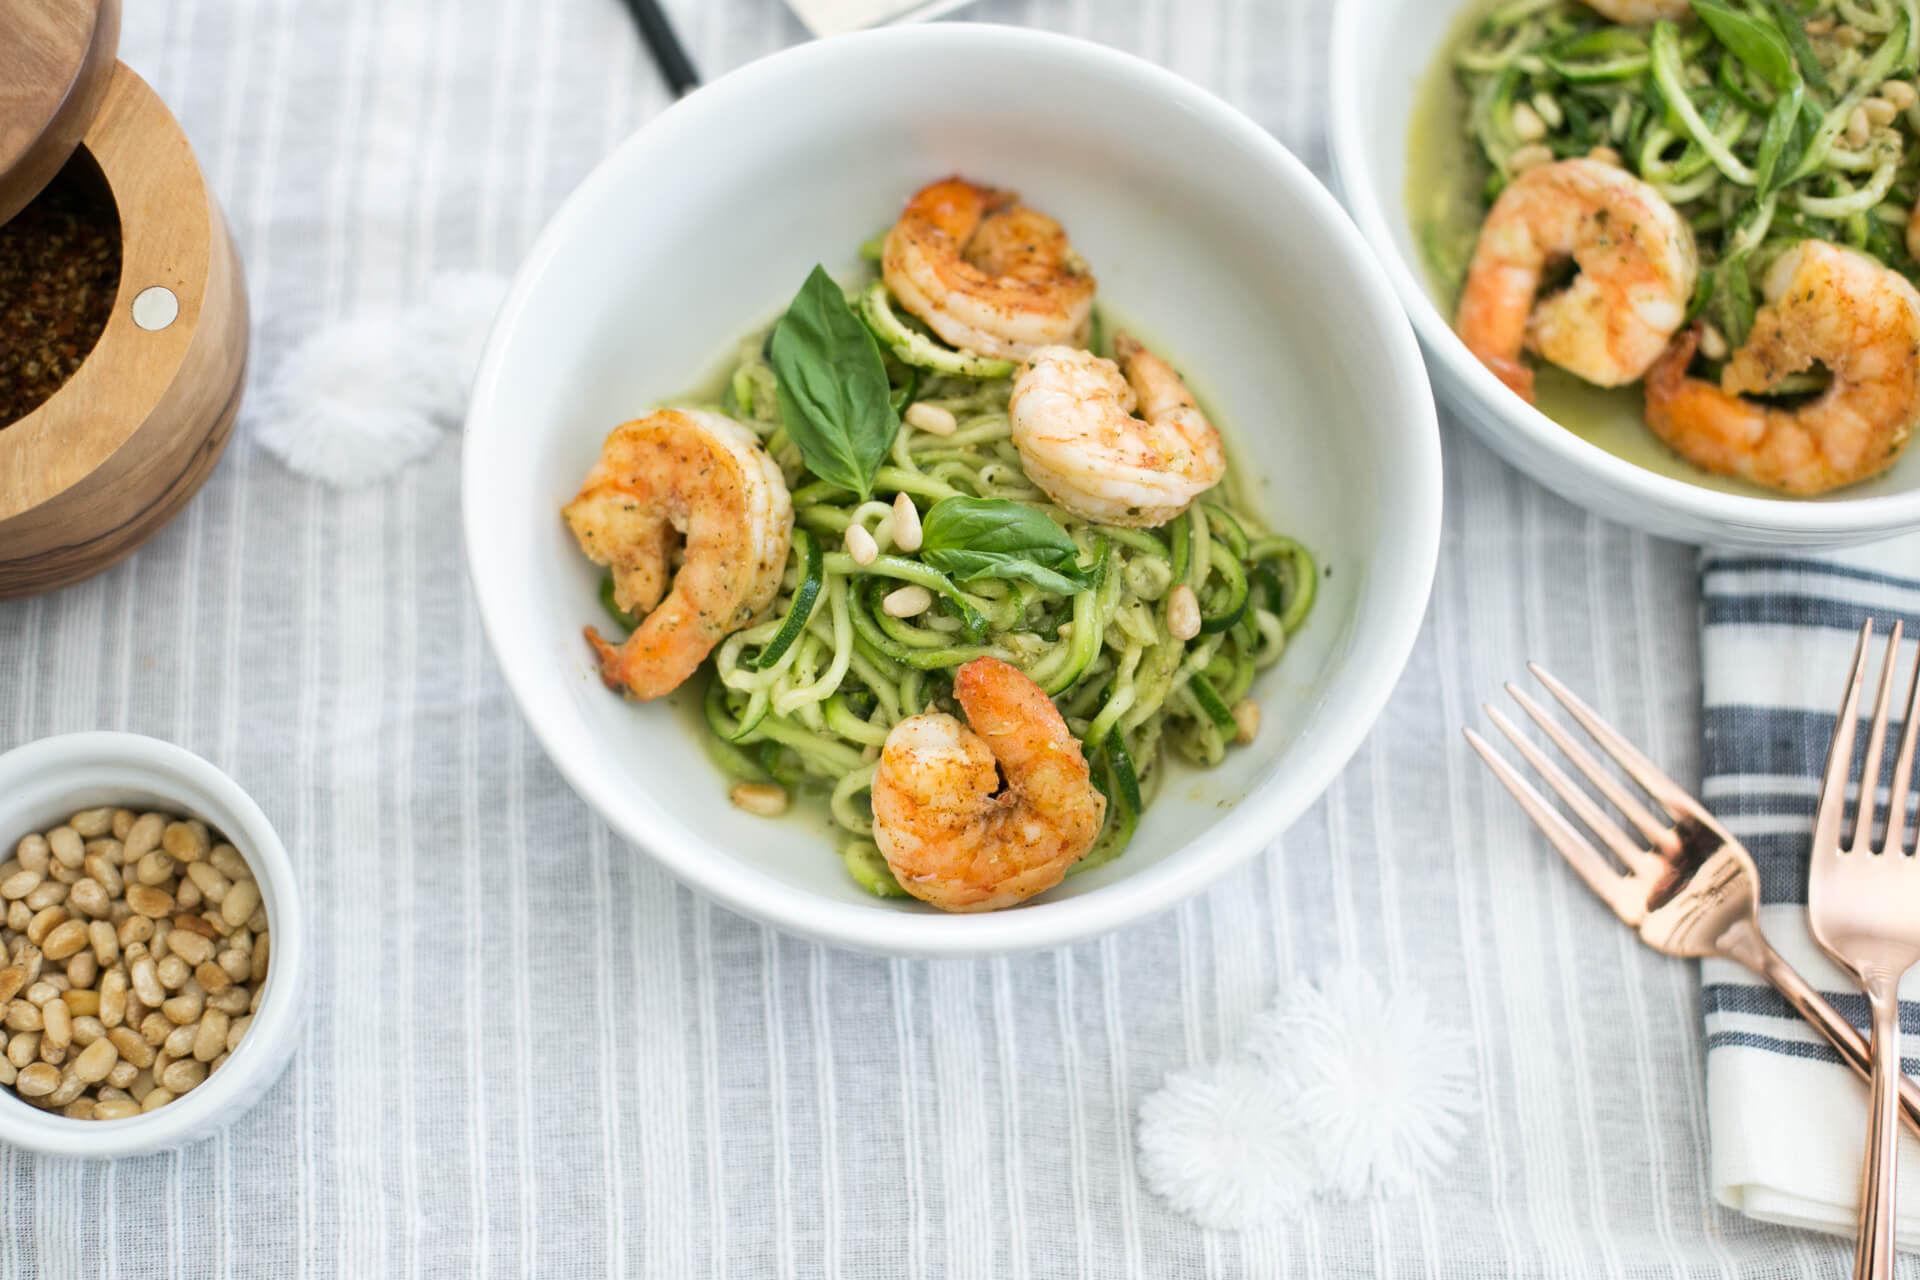 zucchini noodles and seasoned shrimp as my favorite dish this summer - M Loves M @marmar